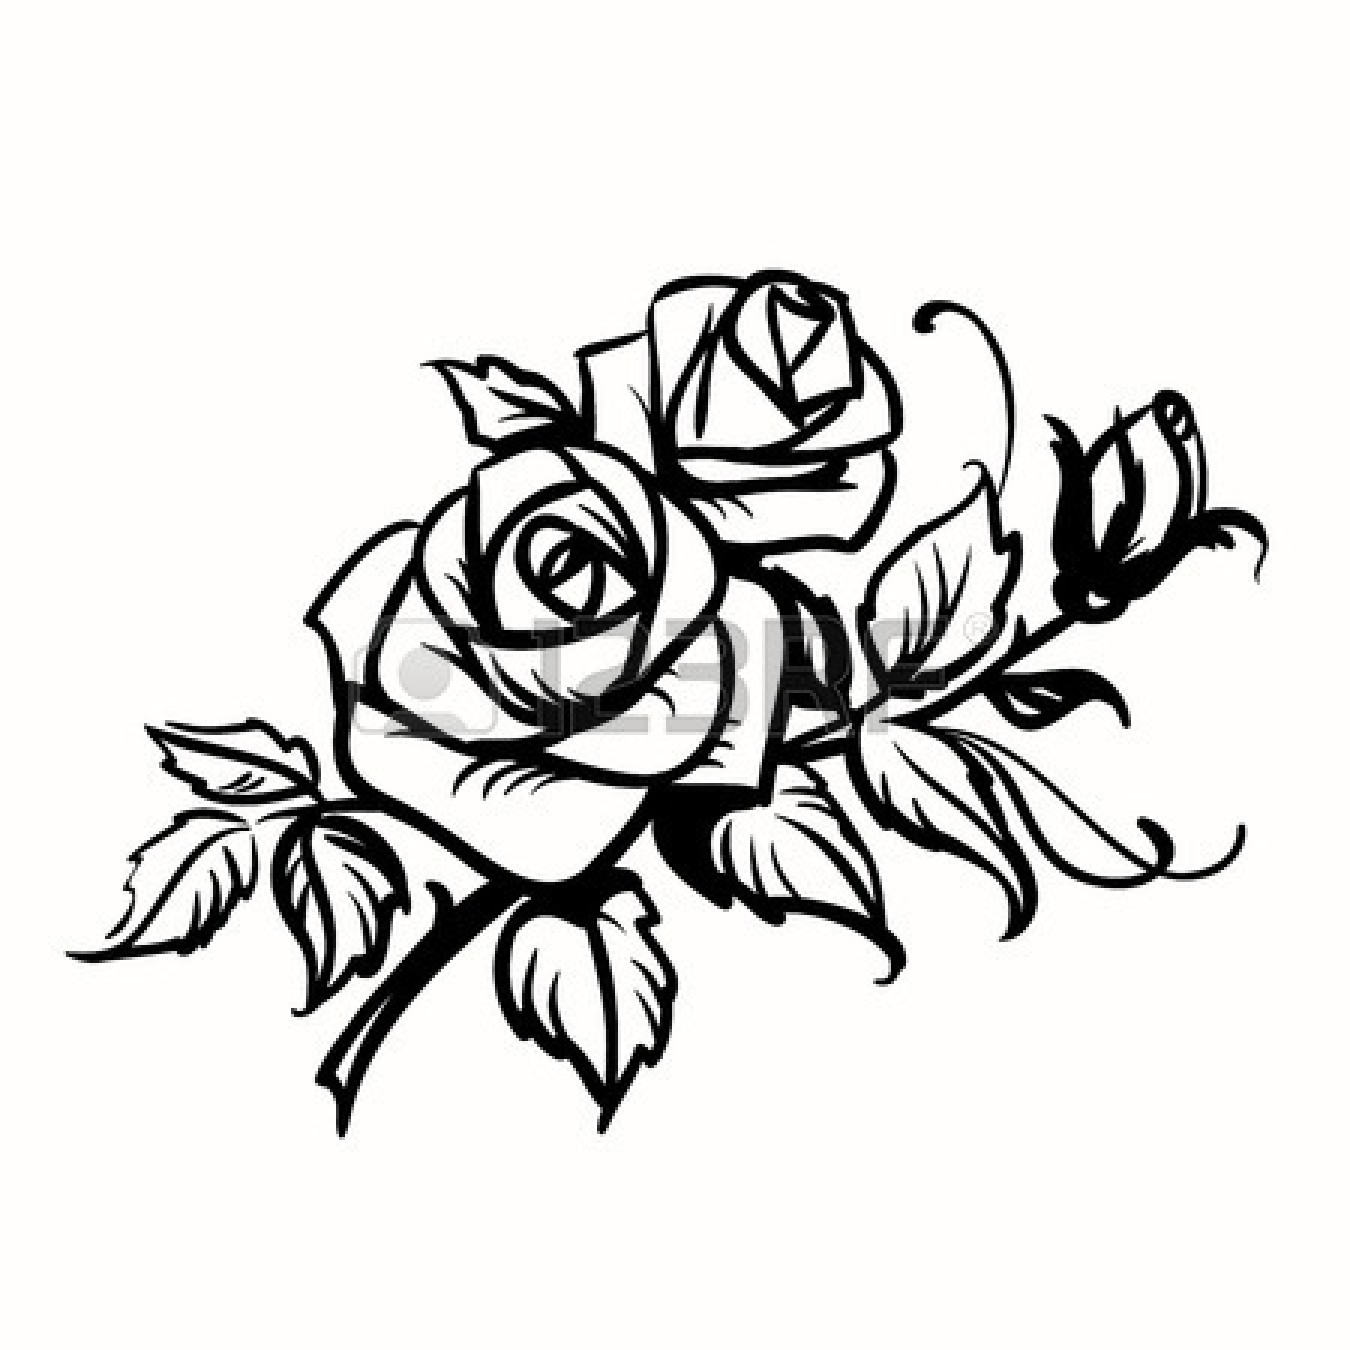 1350x1350 Rose Black And White Outline Clipart Panda